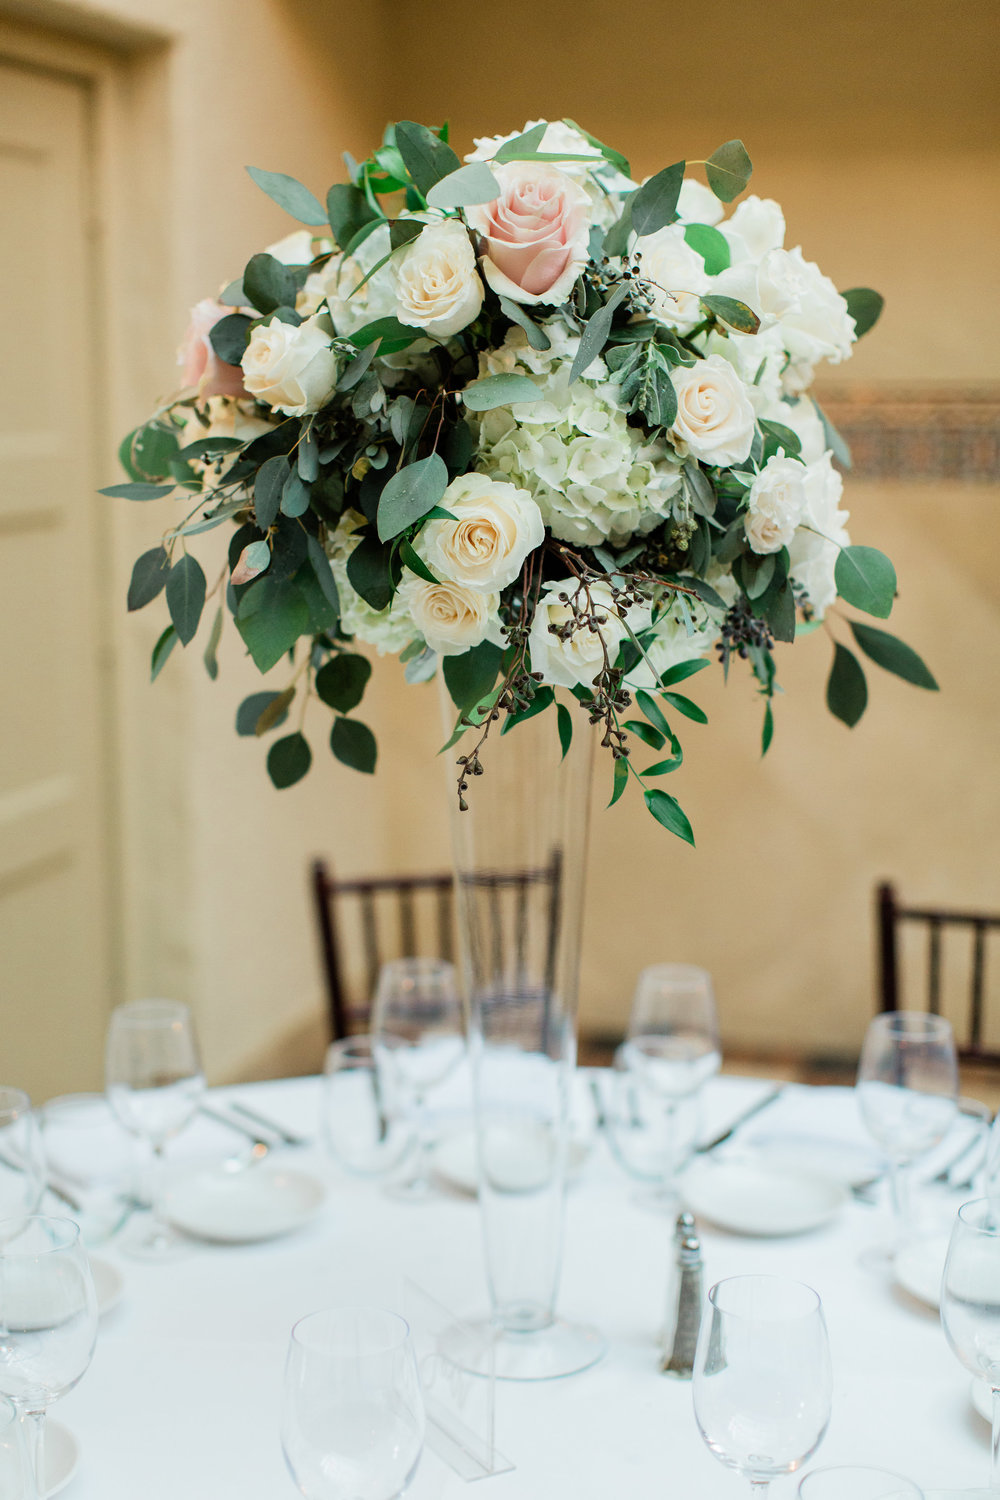 Lush Blush and Greenery Centerpiece by La Feterie, Boca Raton Wedding Planning by Fleeting Elegance